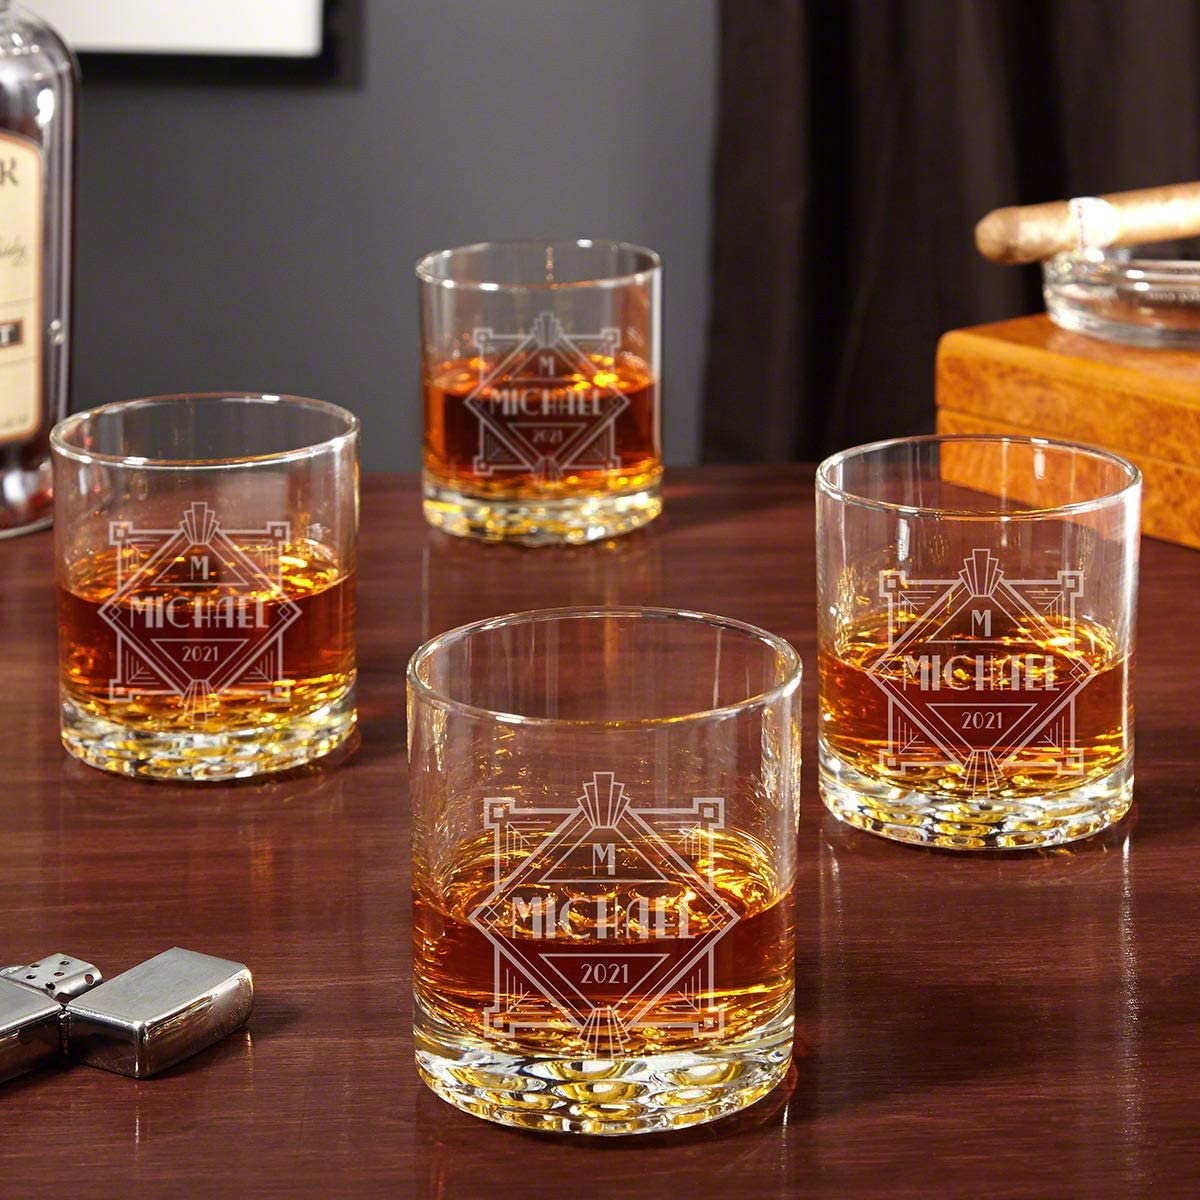 Speakeasy Engraved Buckman Whiskey Glasses Set of 4 (Personalized Product)